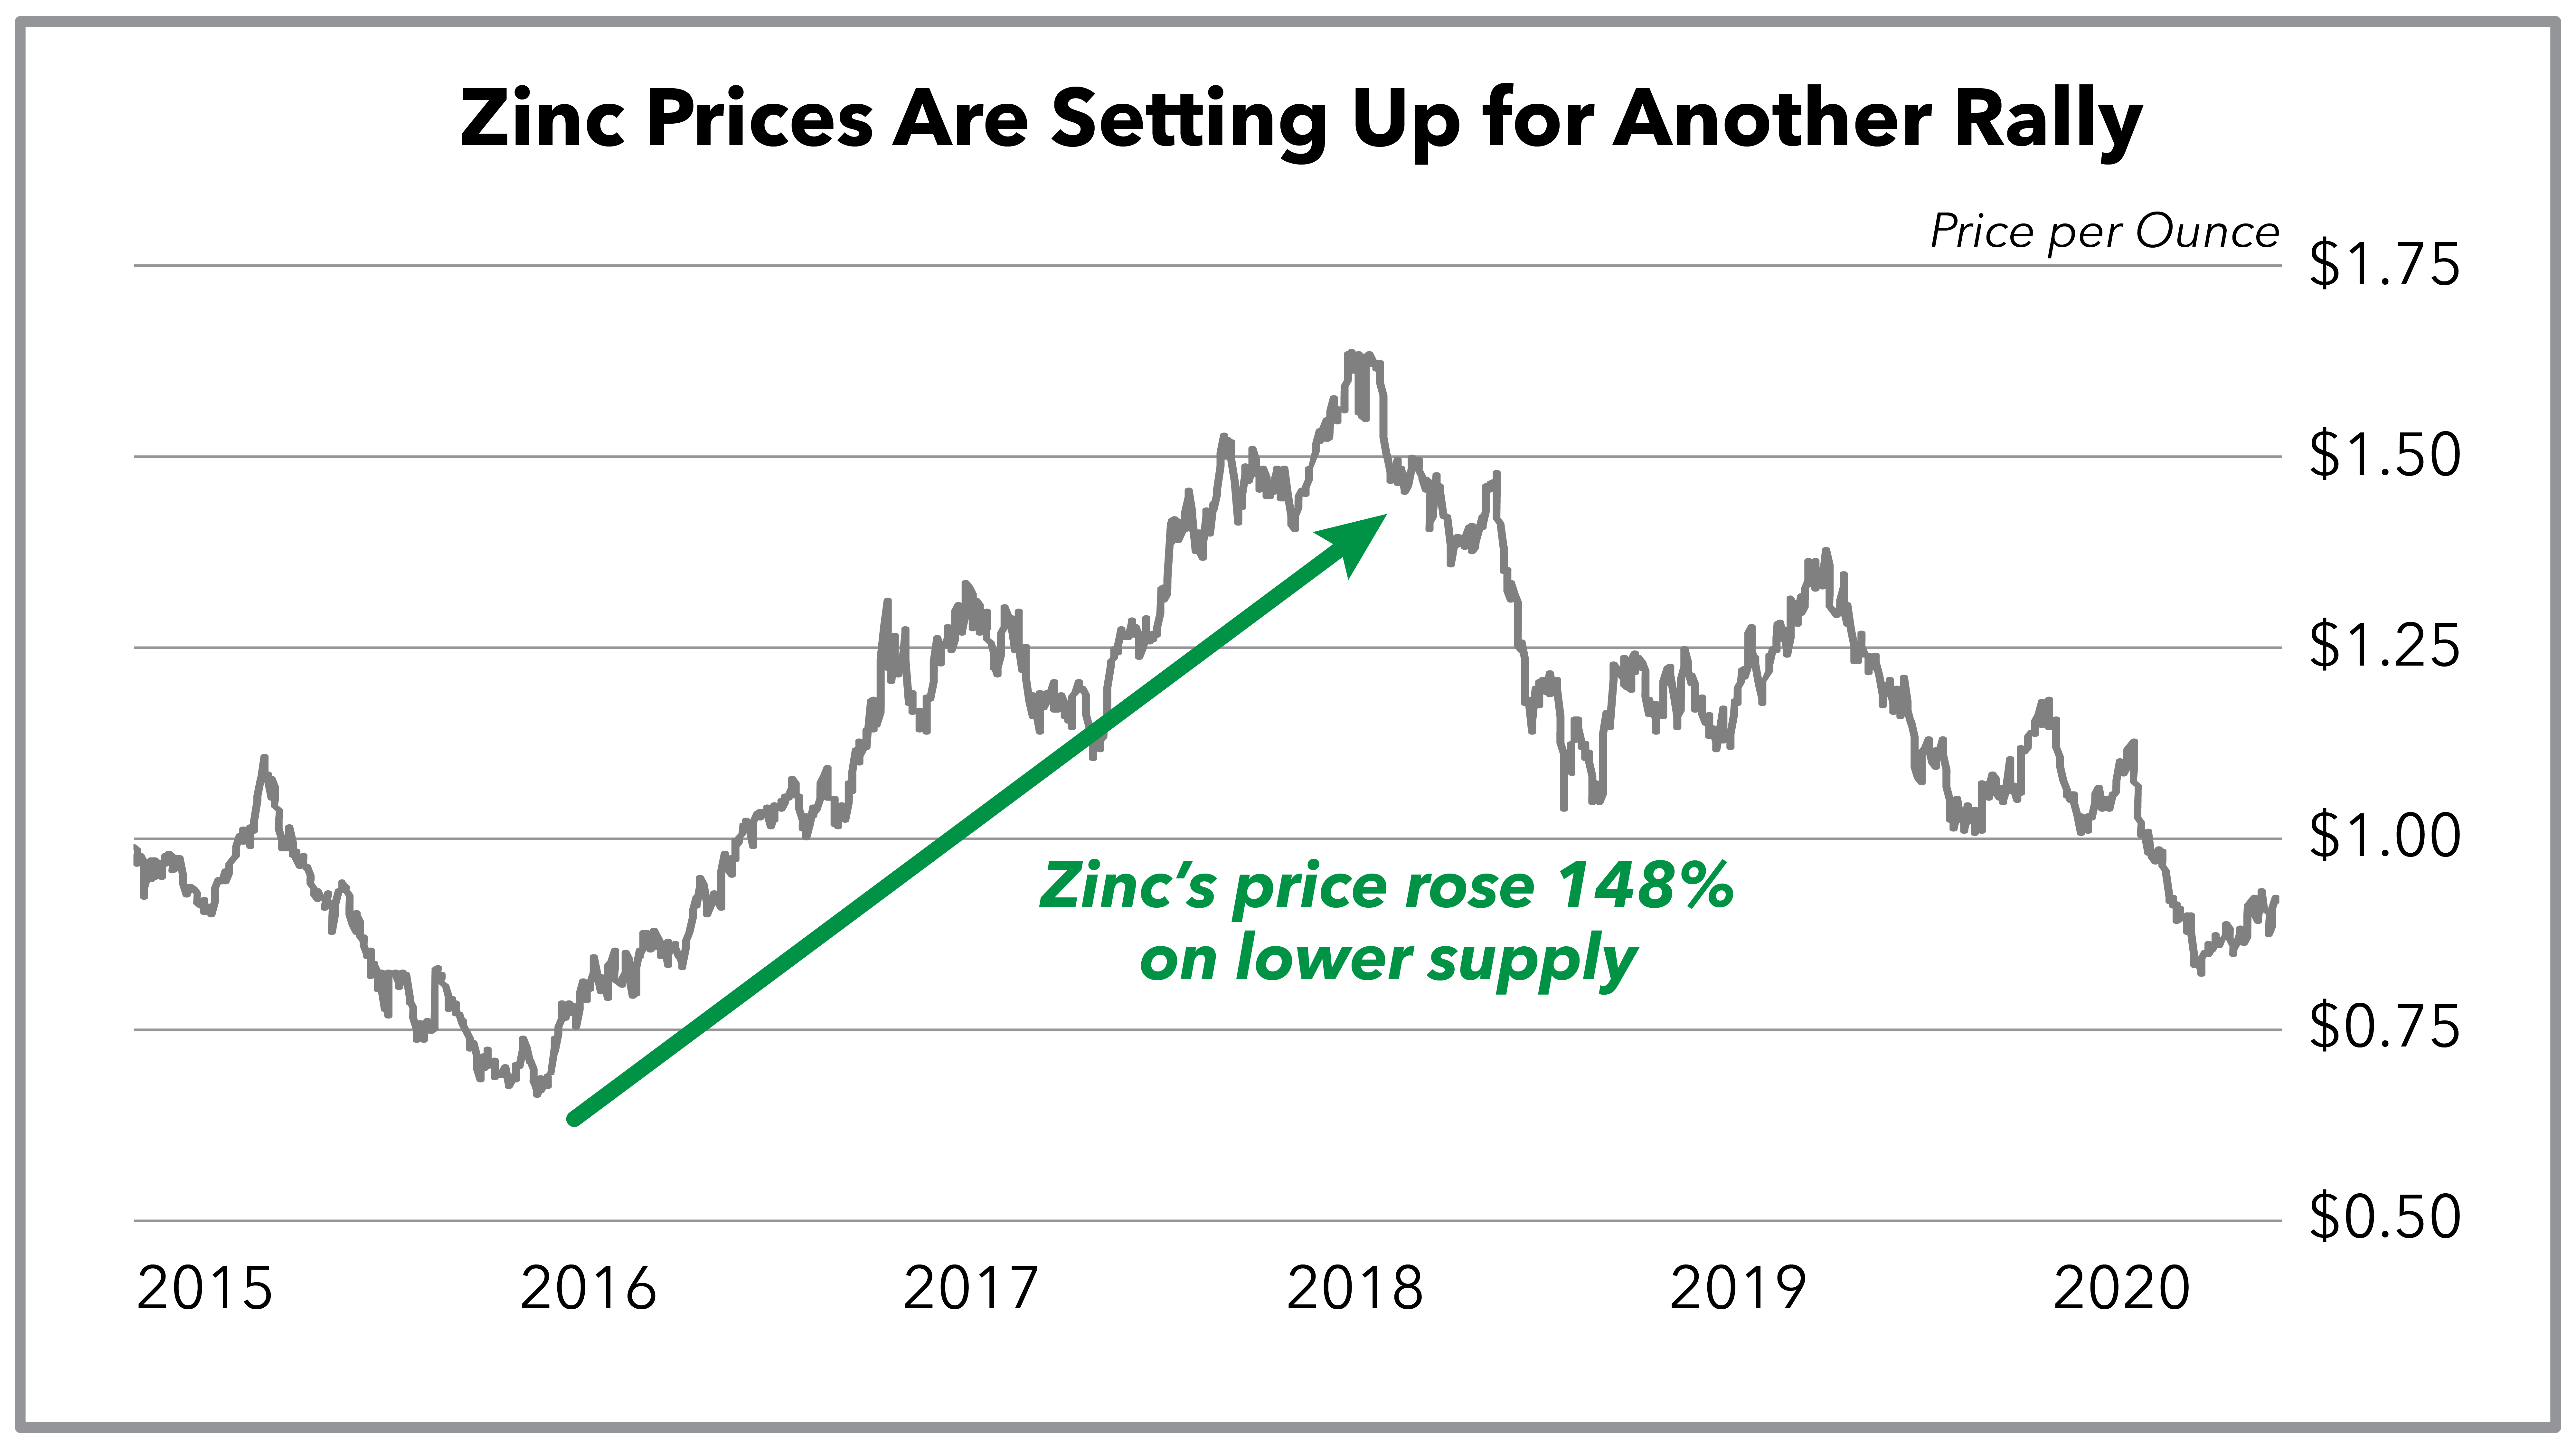 Chart showing that zinc rose 148% from its low in 2015 to its high in 2017.